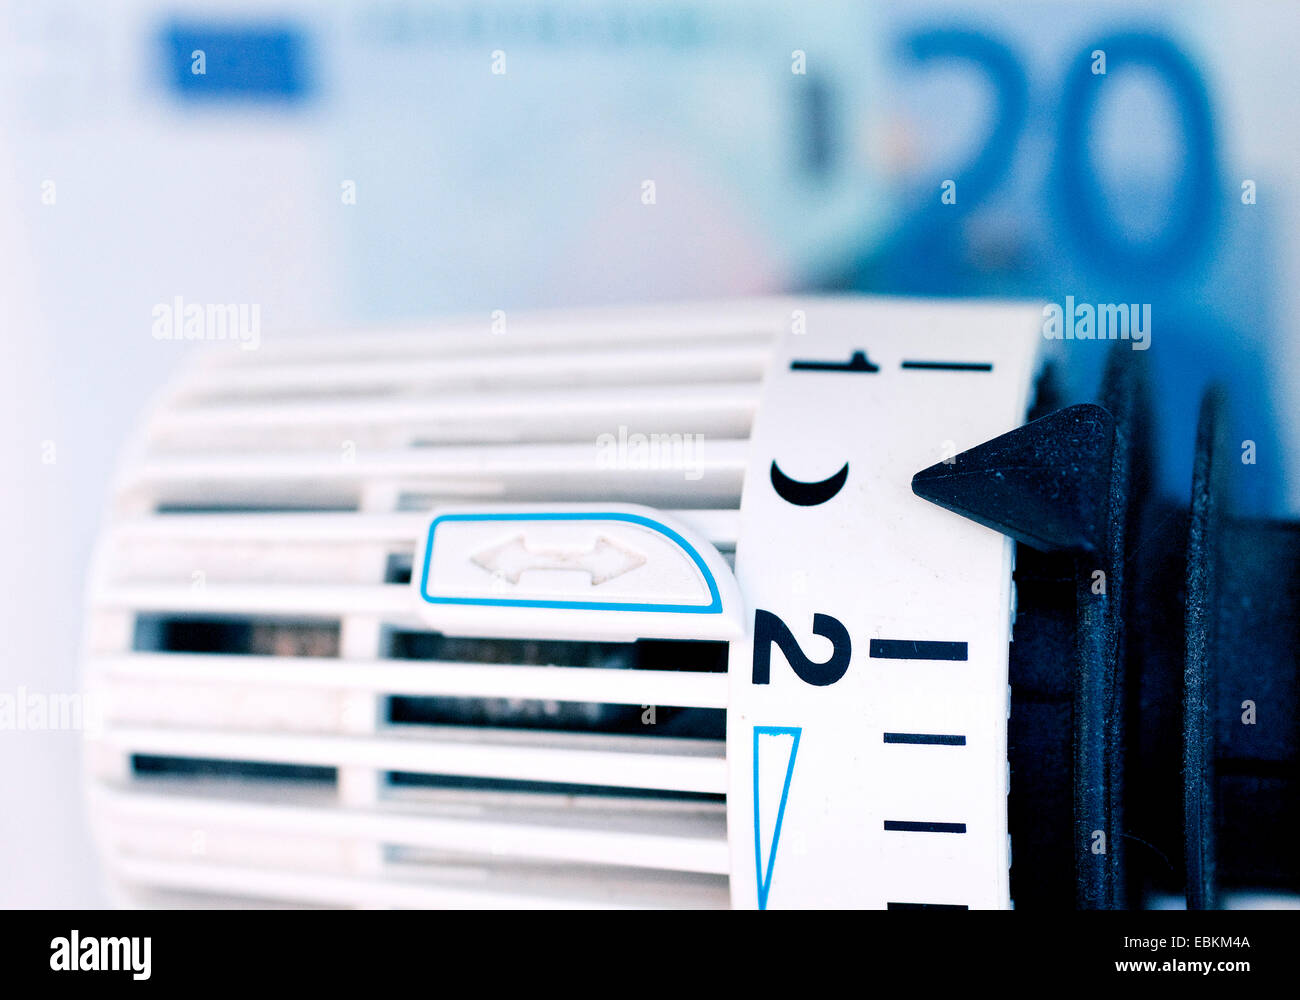 radiator thermostat and bank notes, symbol picture for heating costs, Germany - Stock Image